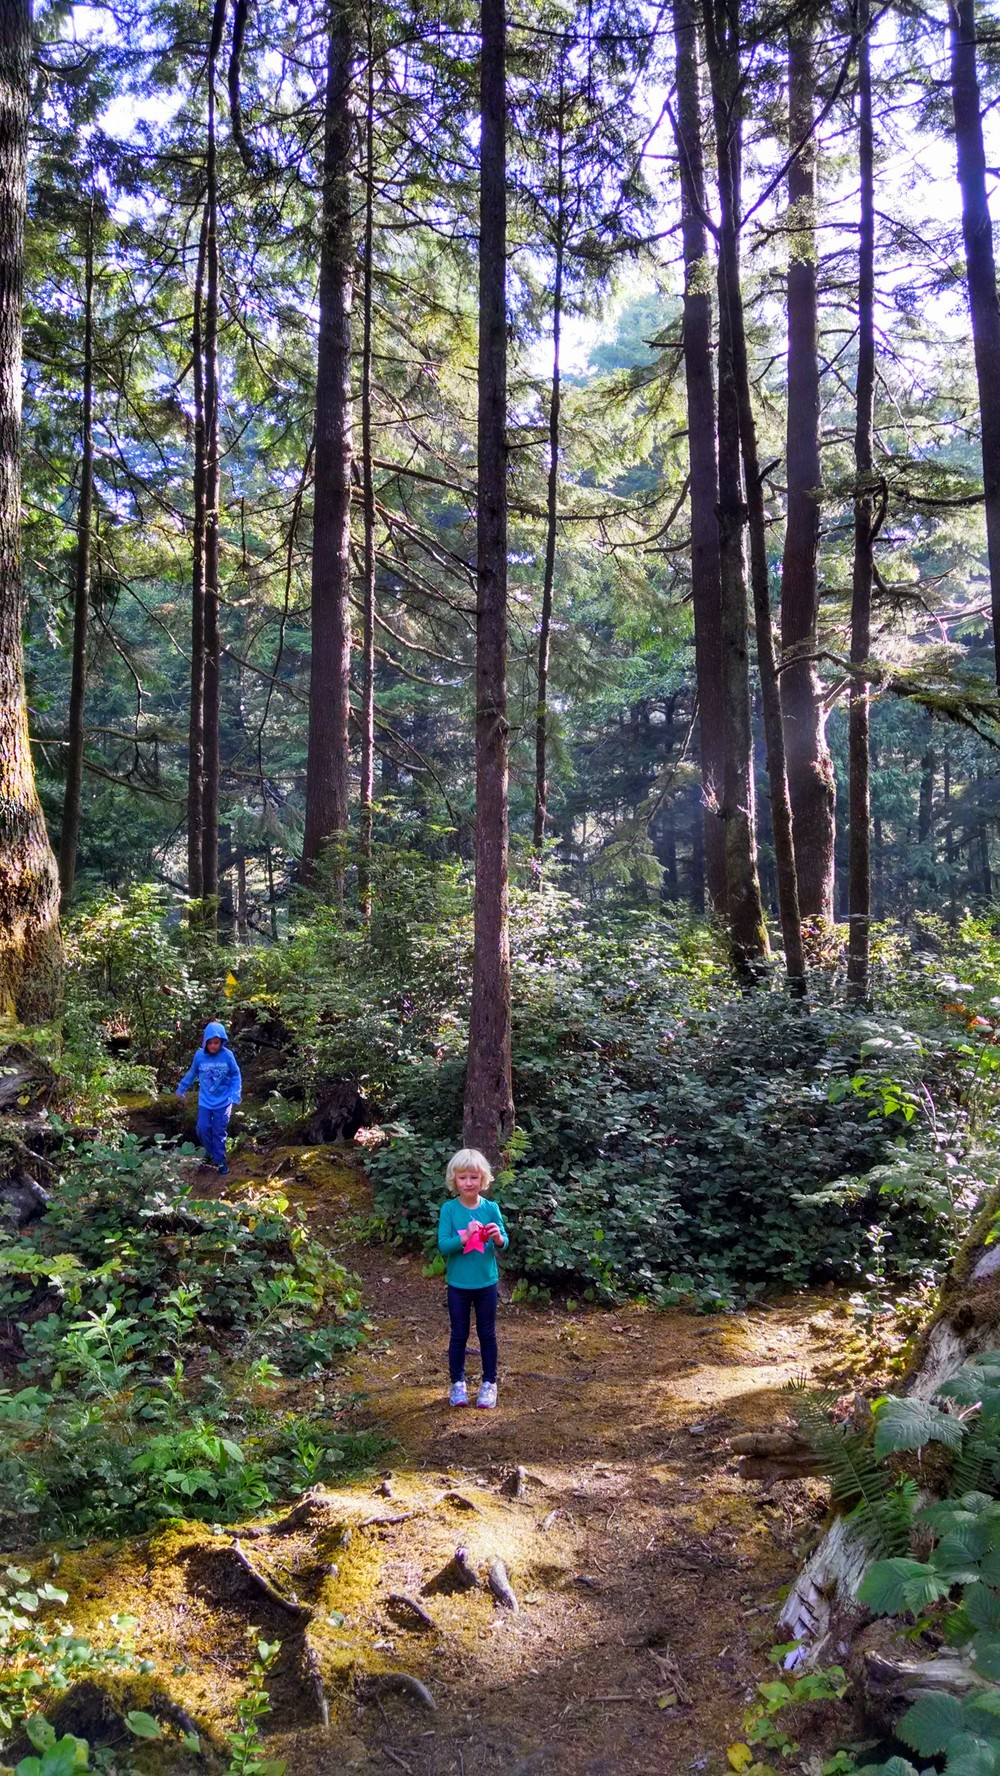 """If you camp at Kalaloch campground (which you should), reserve a spot on the """"A"""" loop. It's the outermost loop and you'll have your own private """"Endor"""" to play in."""